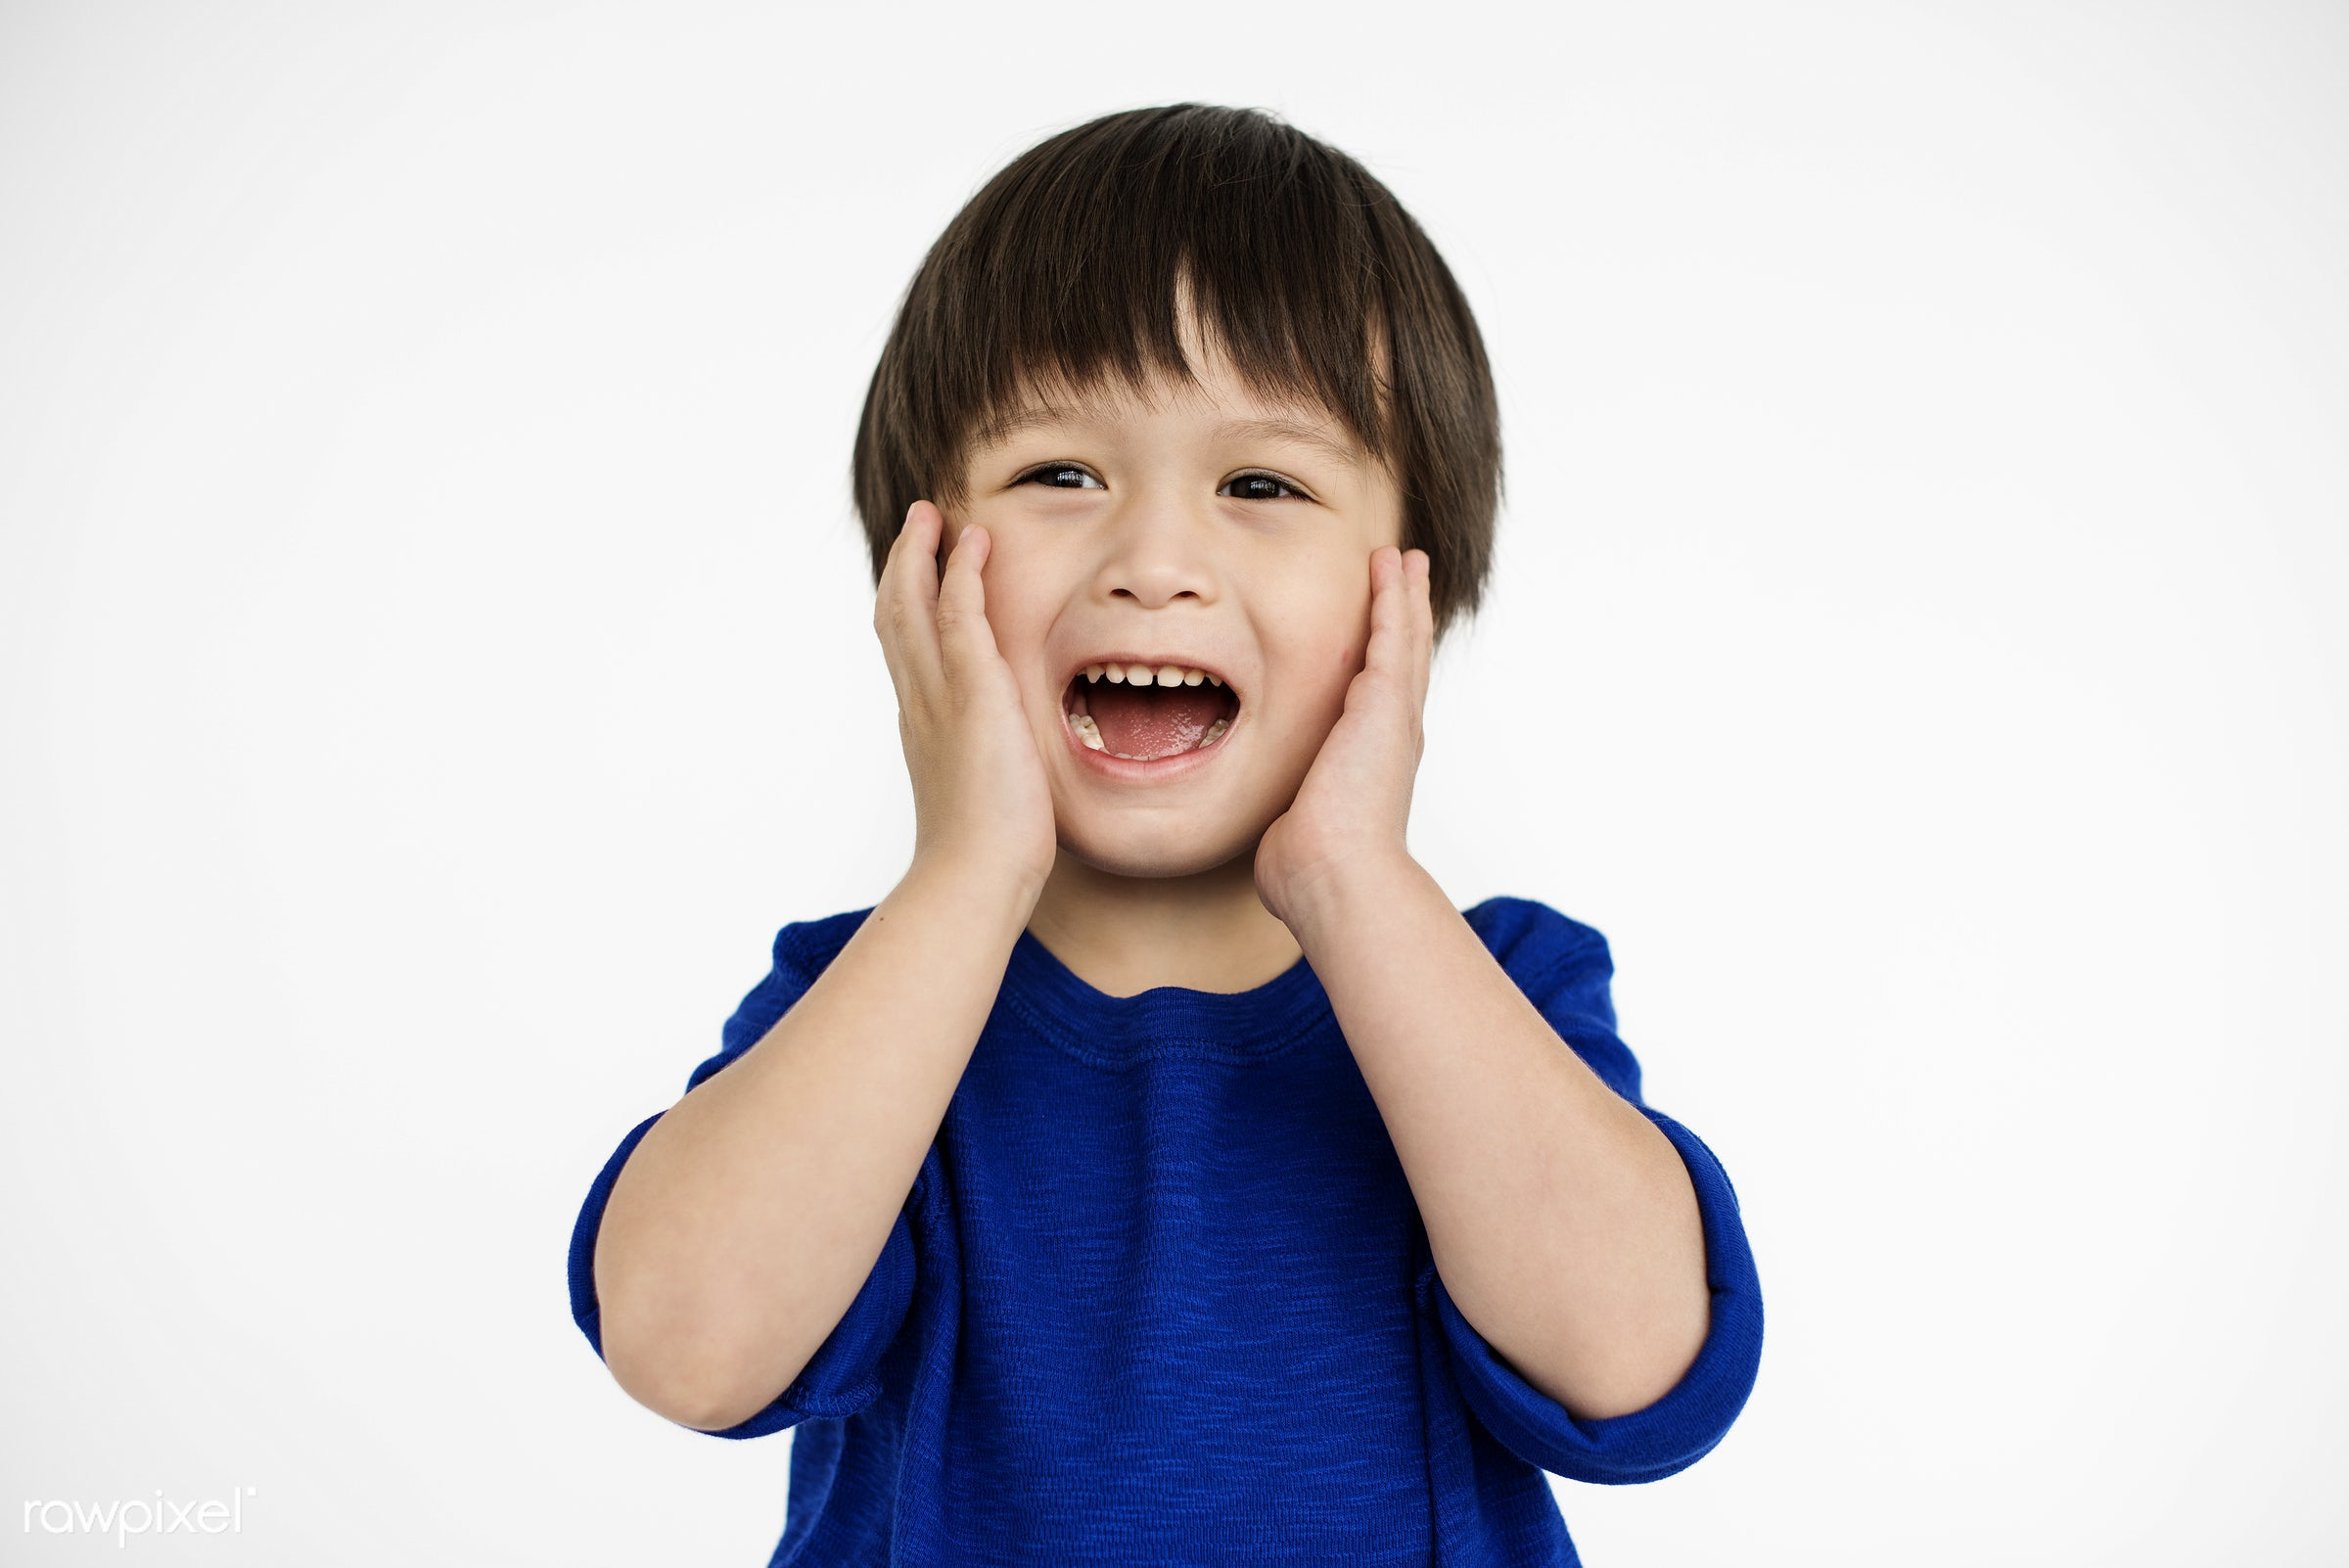 expression, studio, person, sadness, isolated on white, sad, pain, cute, kid, asian, man, unhappy, isolated, scream, crying...